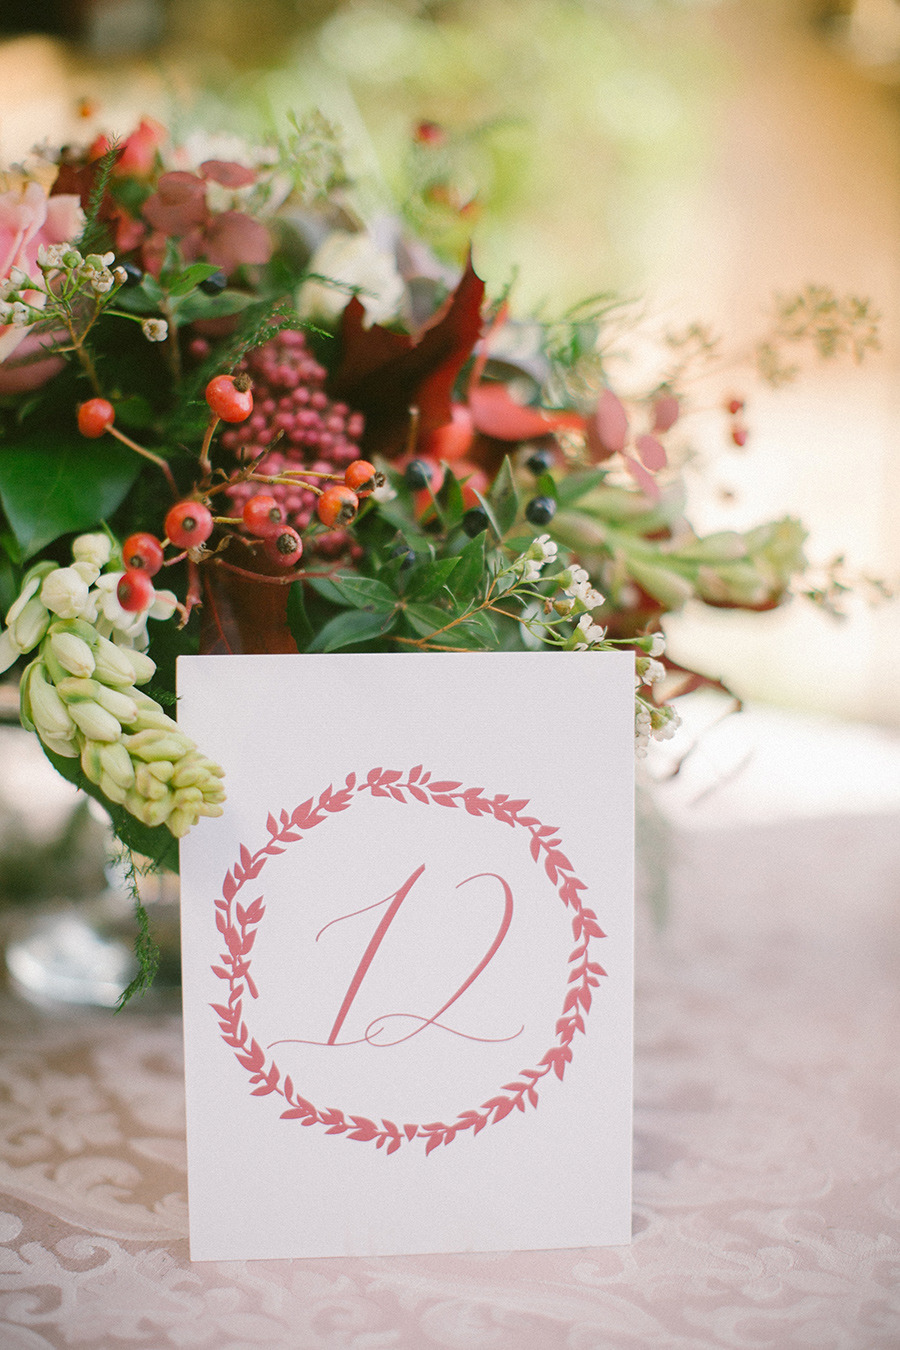 calligraphy wedding table number -Boho Chic Wedding Inspiration Shoot from Anna Roussos Photography - annaroussos.com | Read more : http://www.fabmood.com/boho-chic-wedding-inspiration-shoot-anna-roussos-photography